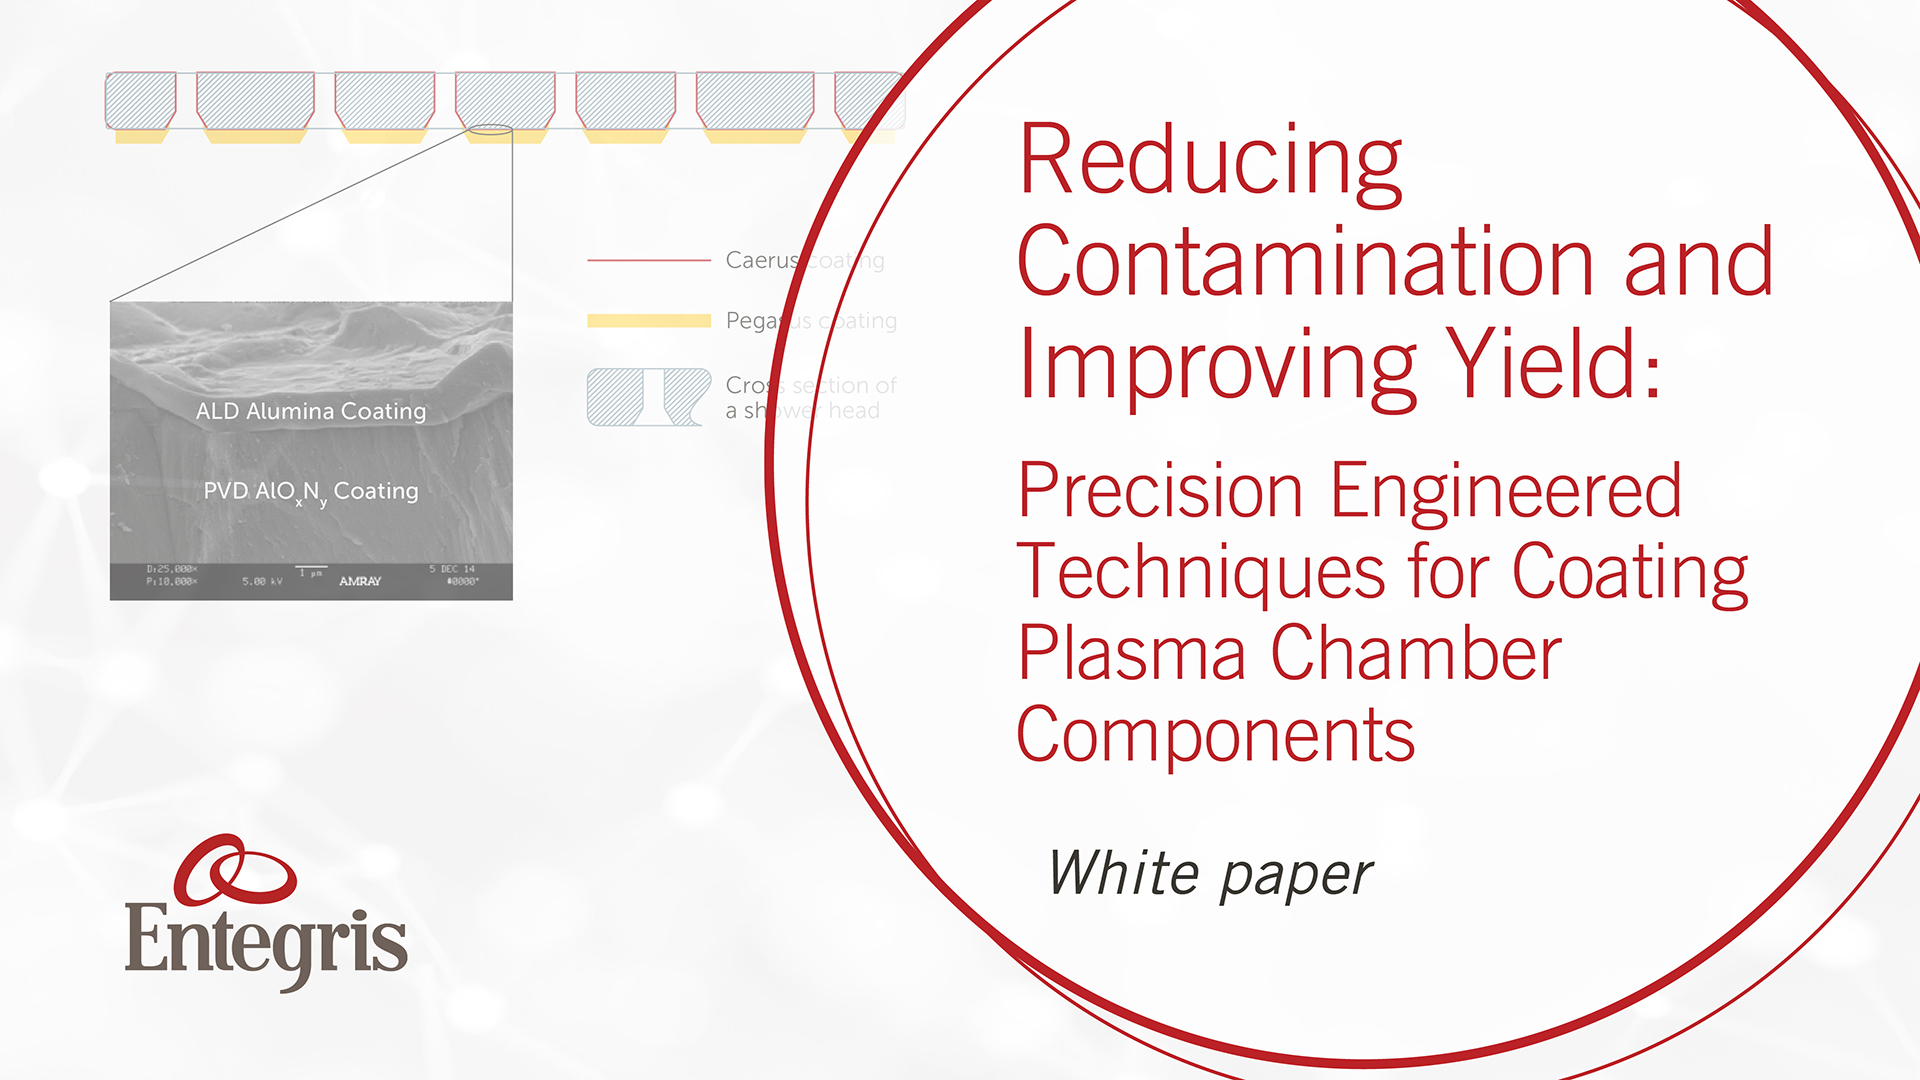 Reducing Contamination for Coatings-10341-1920x1080